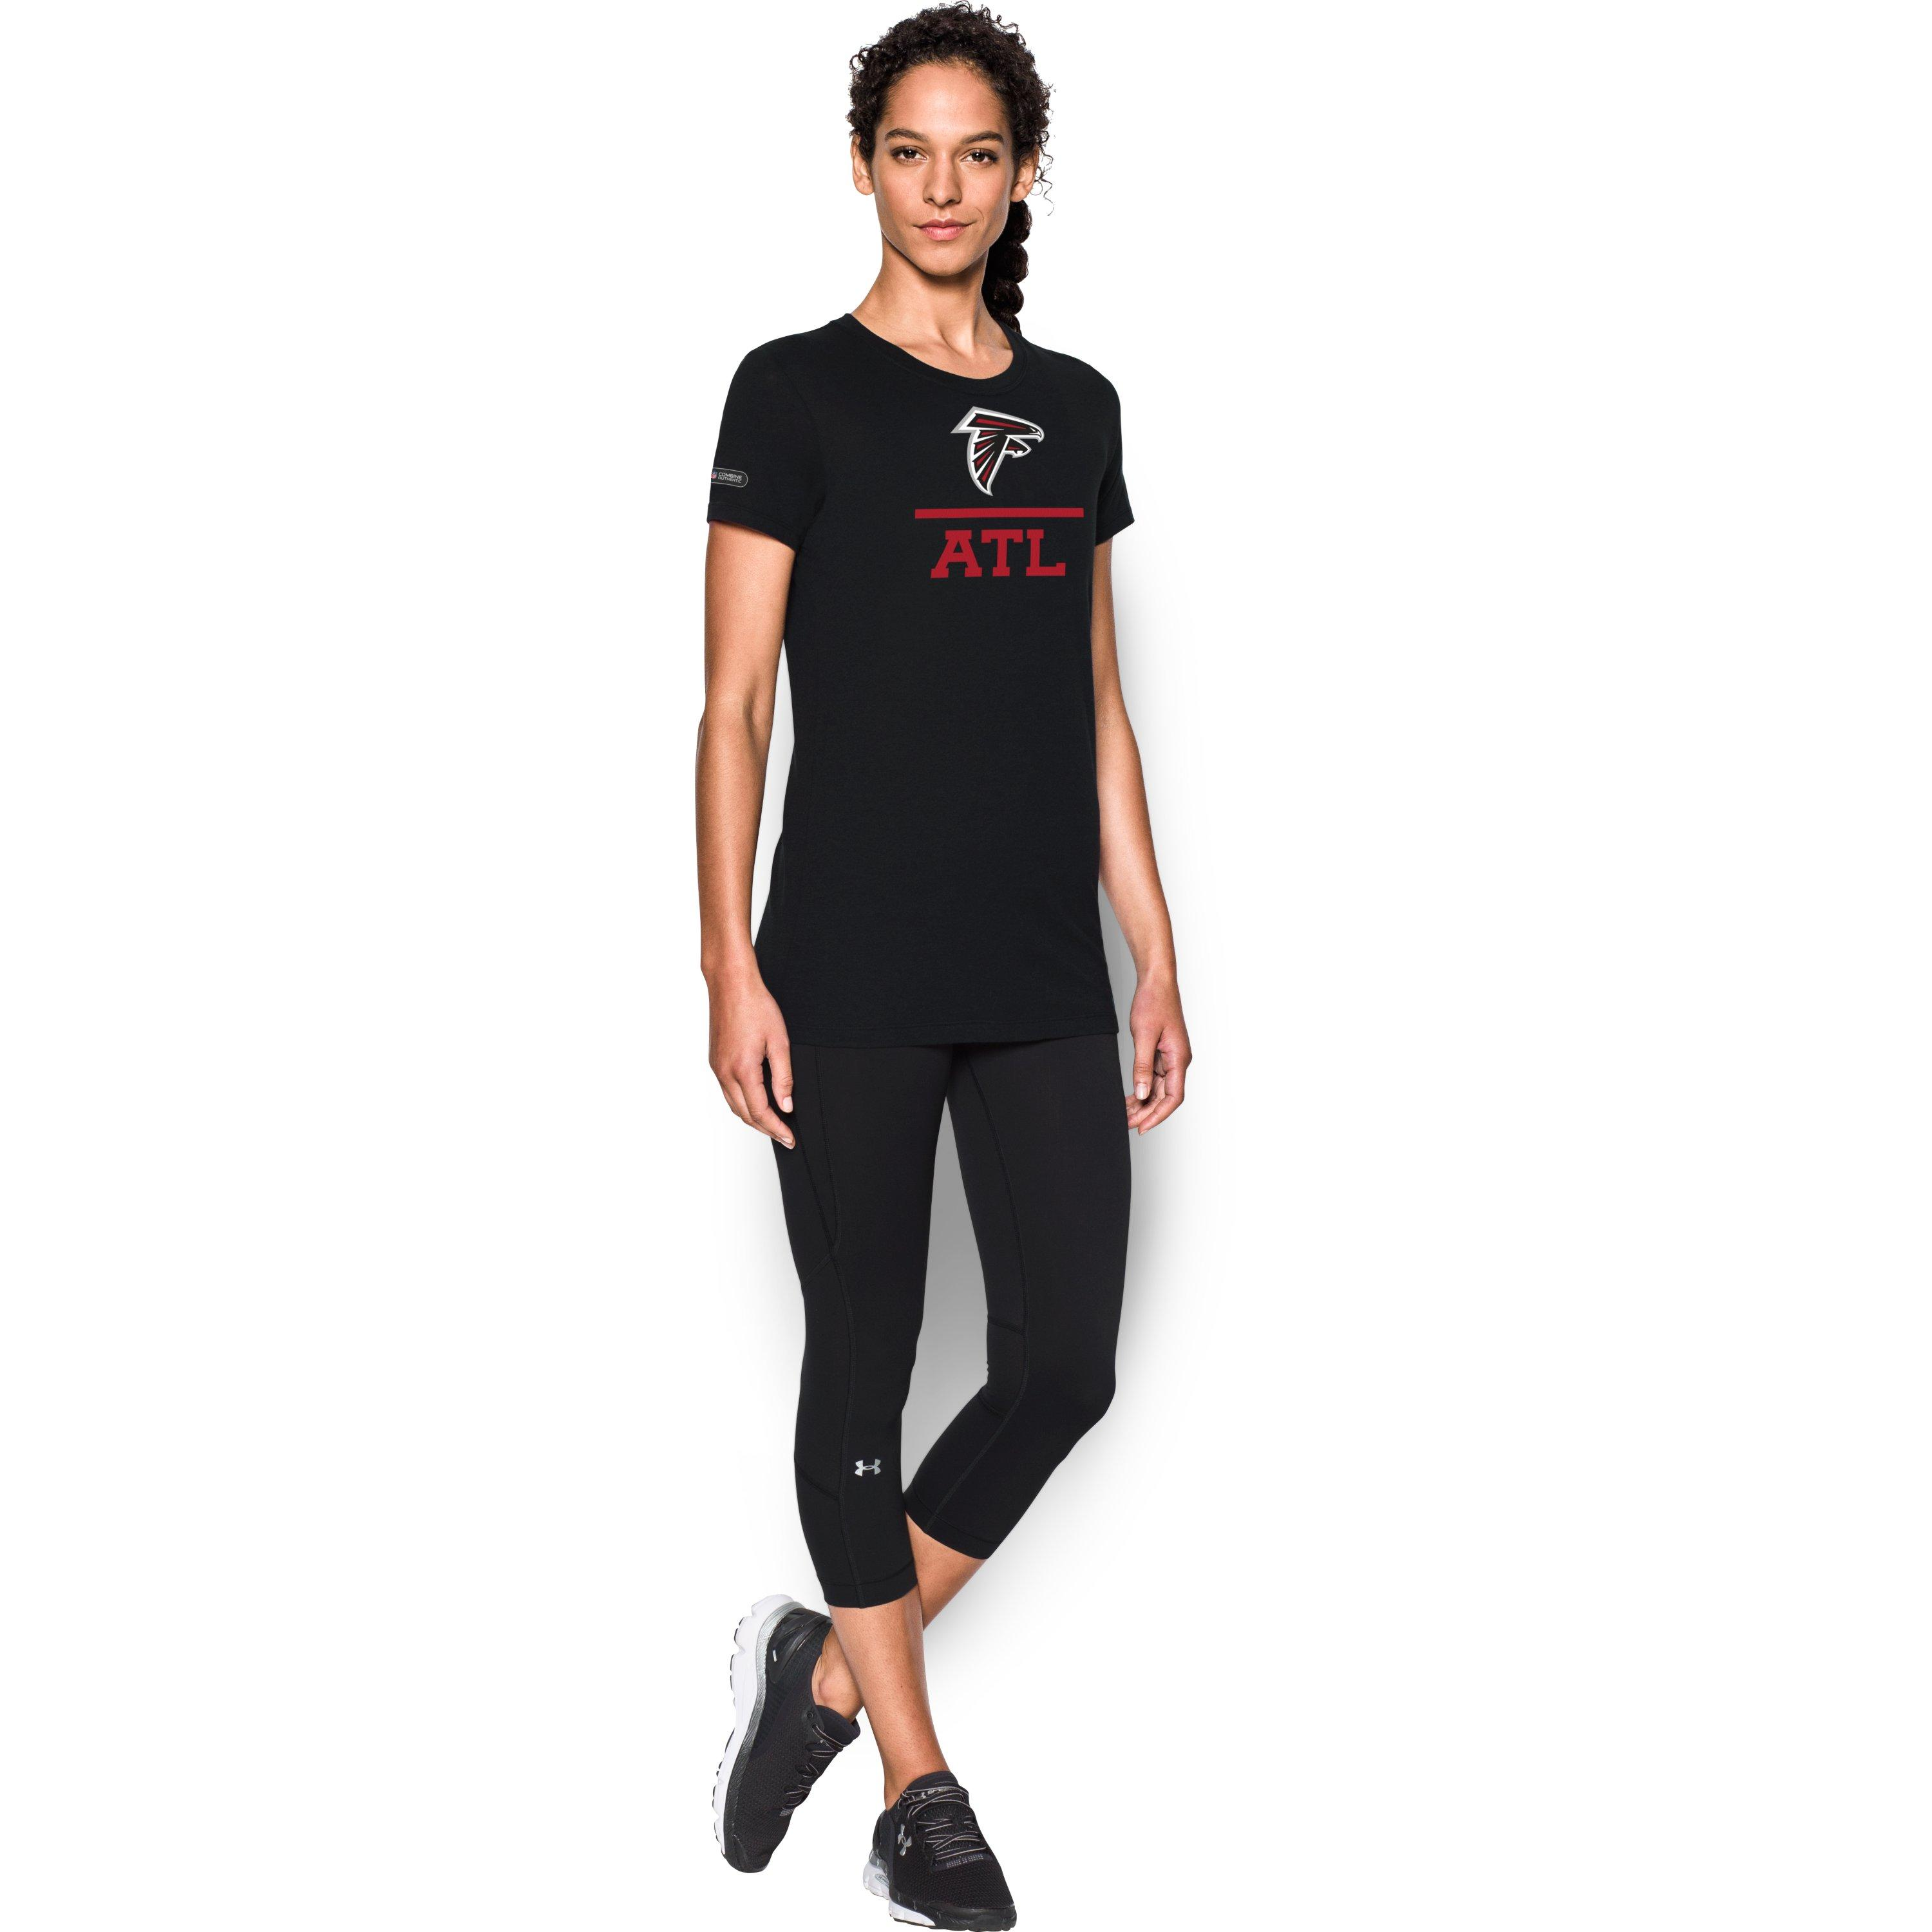 Lyst under armour women 39 s nfl combine authentic logo for Thrilla in manila shirt under armour